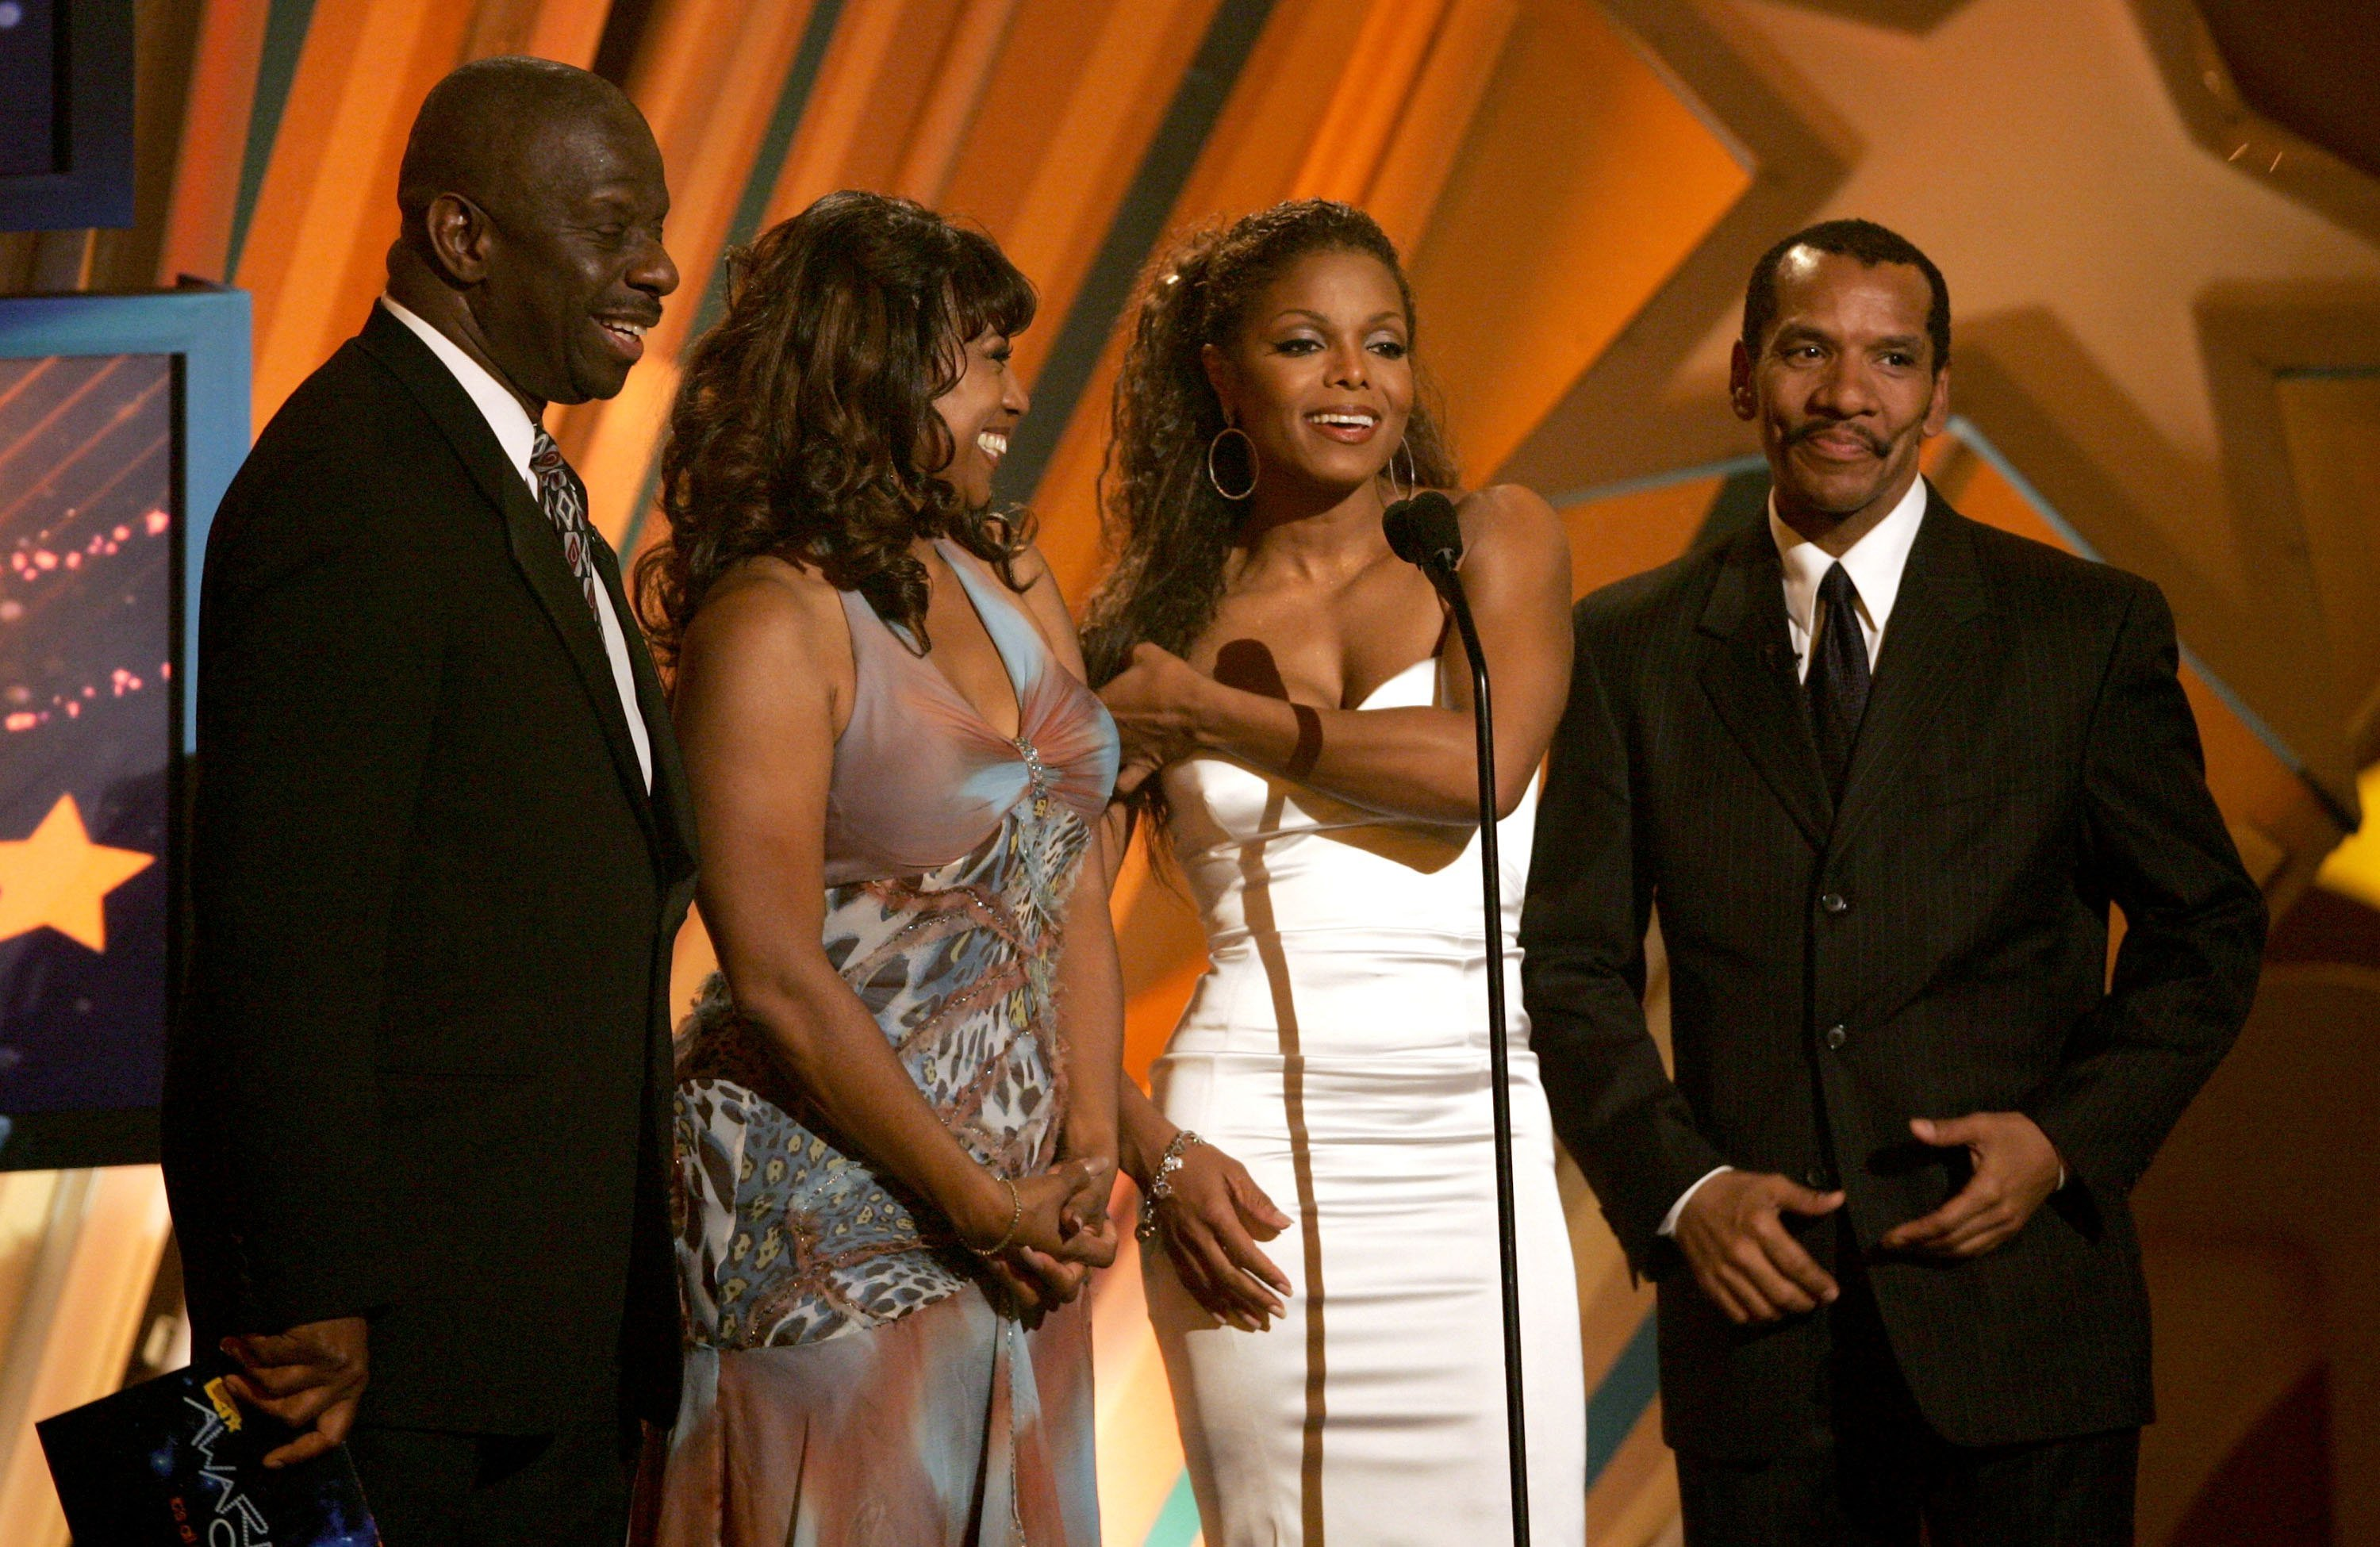 Jimmie Walker, BernNadette Stanis, Janet Jackson and actor Ralph Carter present an award onstage at the 2006 BET Awards at the Shrine Auditorium on June 27, 2006 in Los Angeles, California | Photo: GettyImages